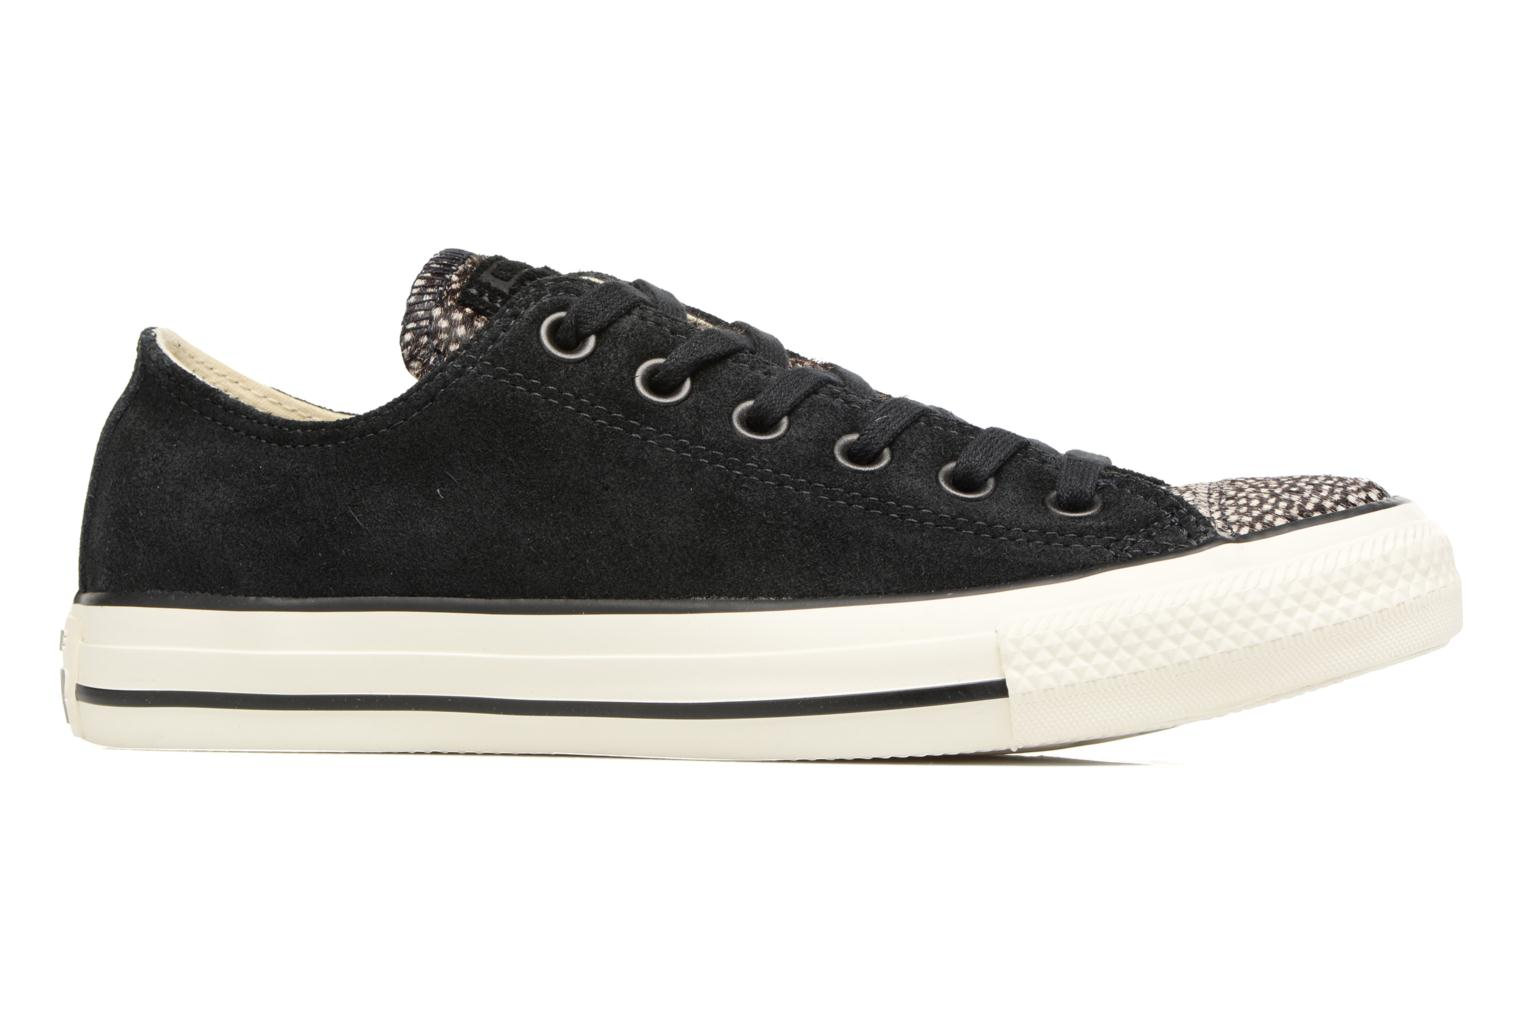 Chuck Taylor All Star Pony Hair Ox Black/Black/Egret